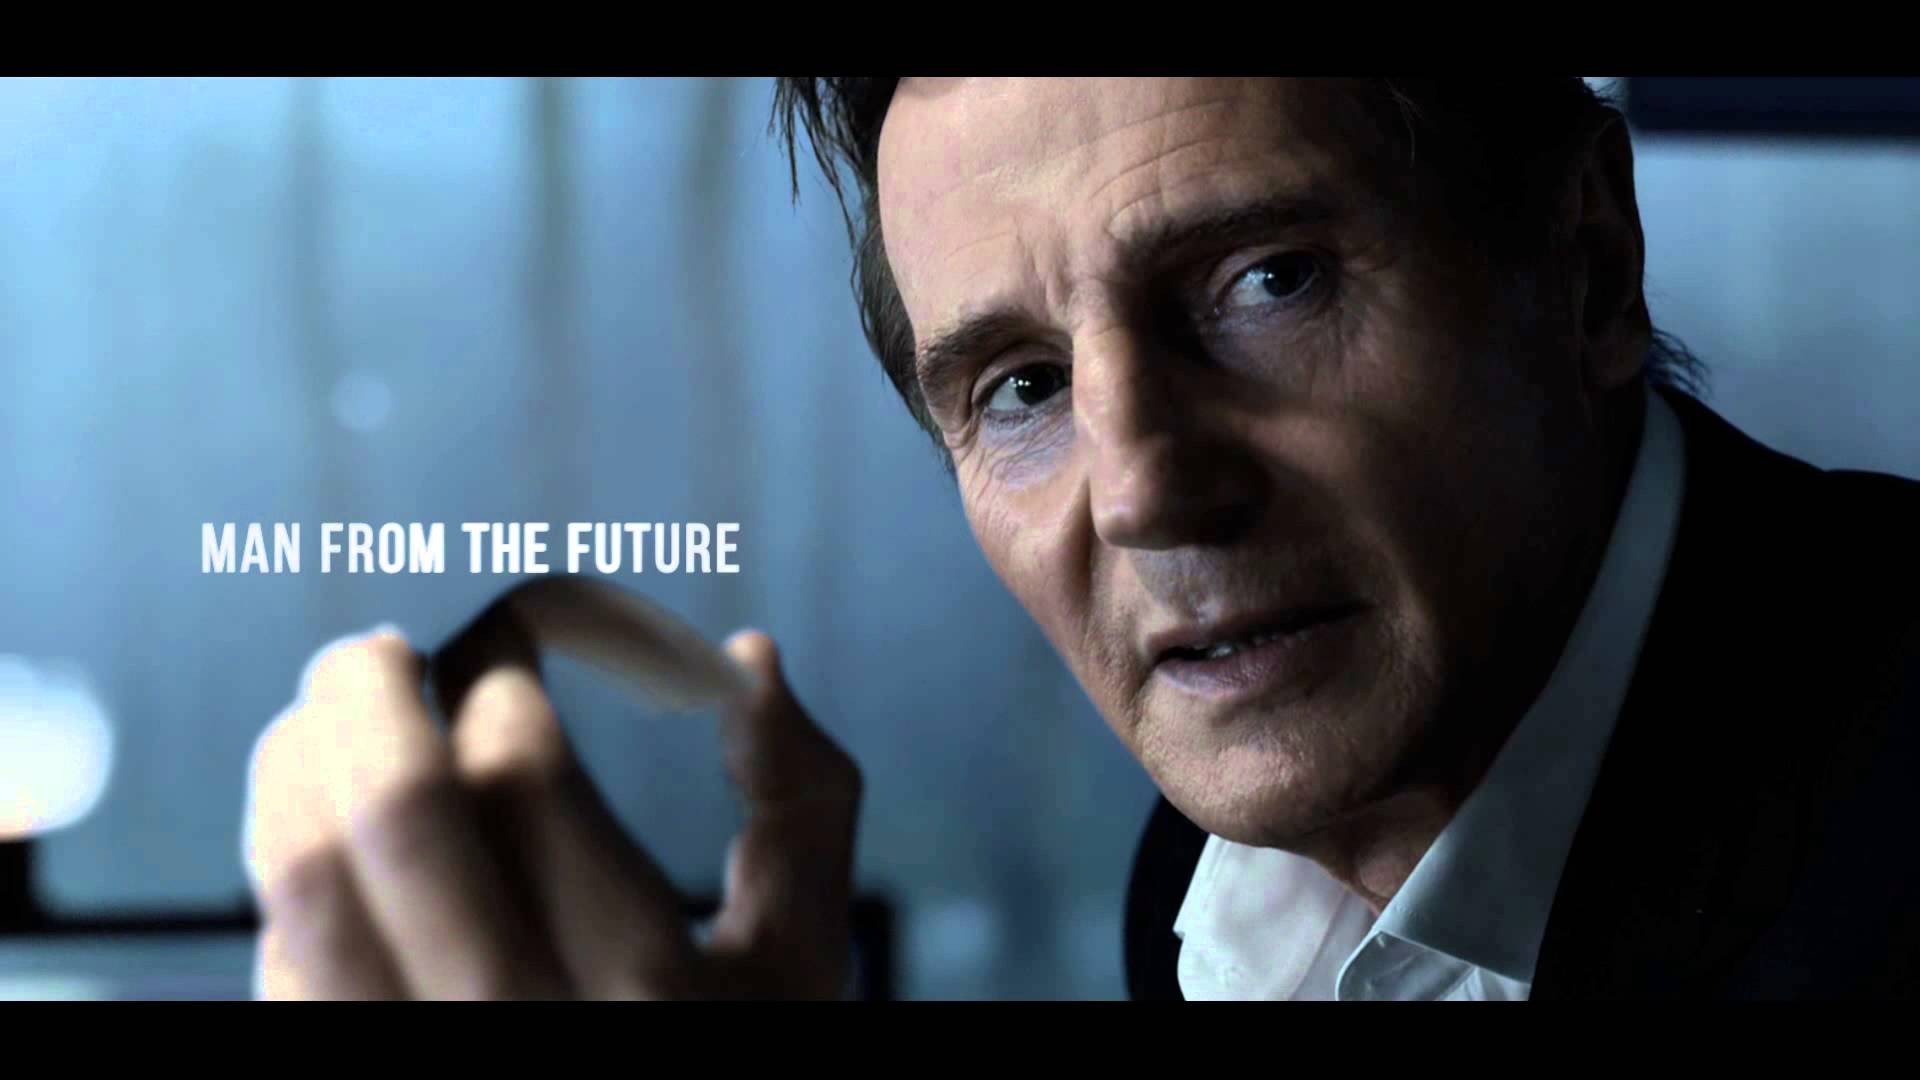 LG's Man From The Future Teaser